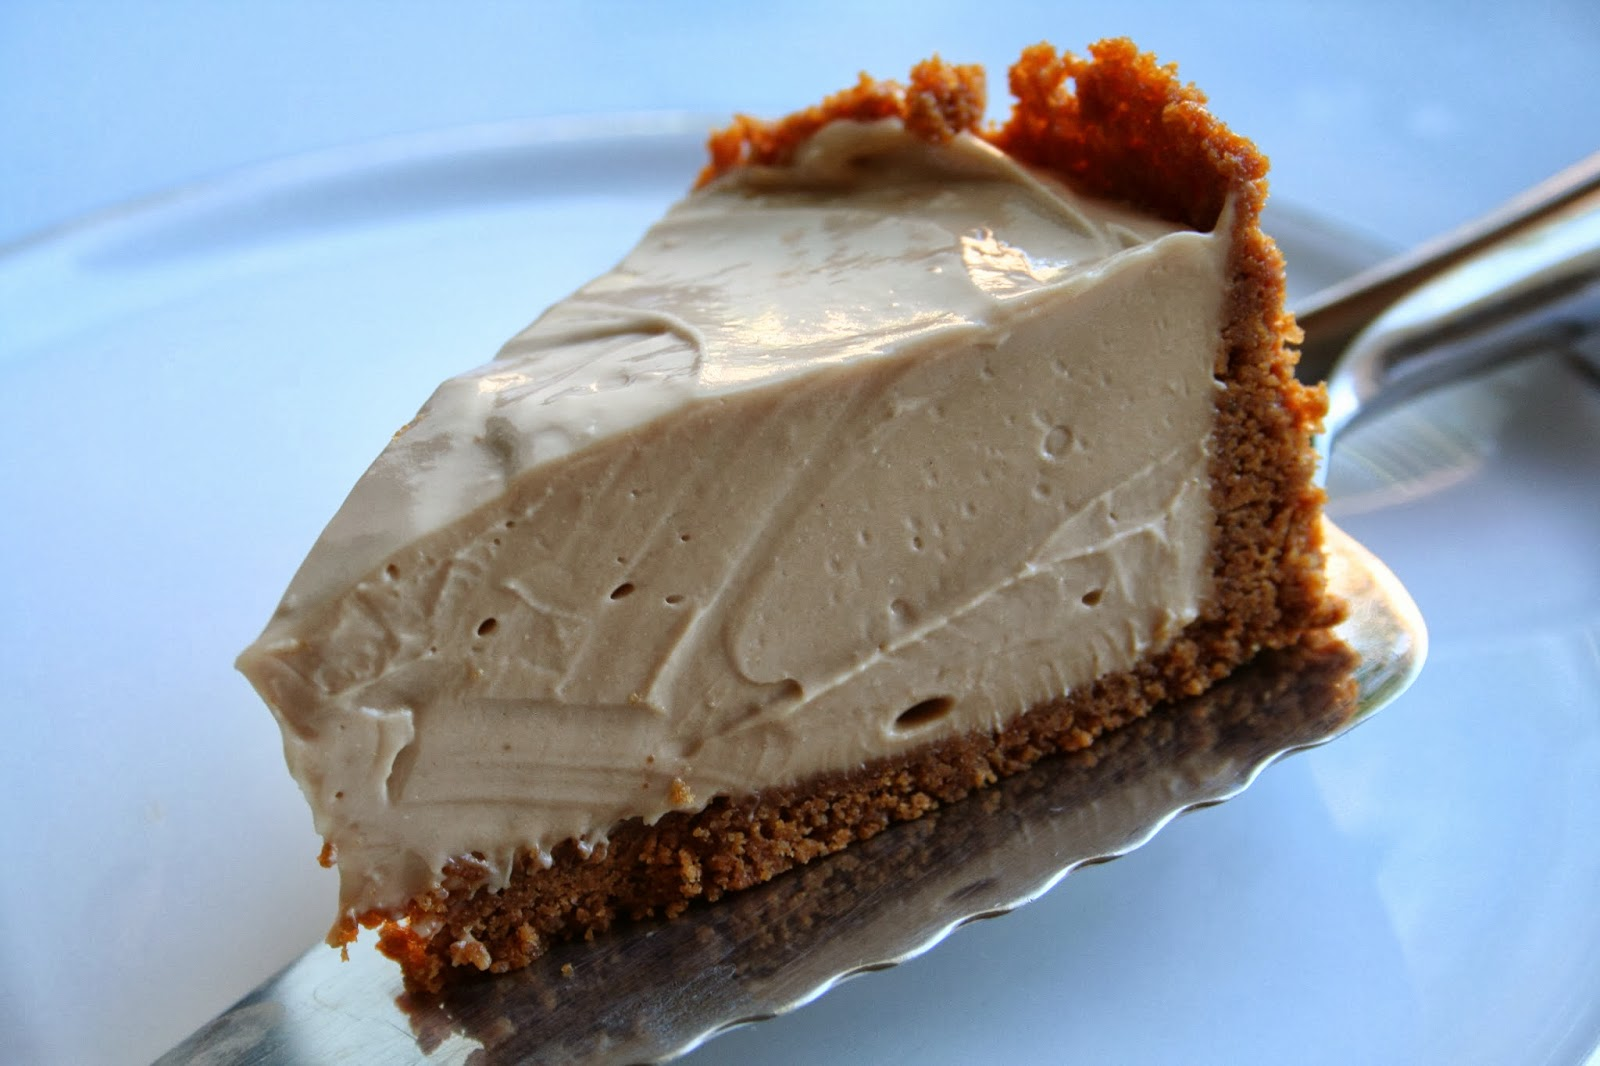 Cheesecake sans cuisson speculos chocolat blanc blogs de cuisine - Cheesecake speculoos sans cuisson ...